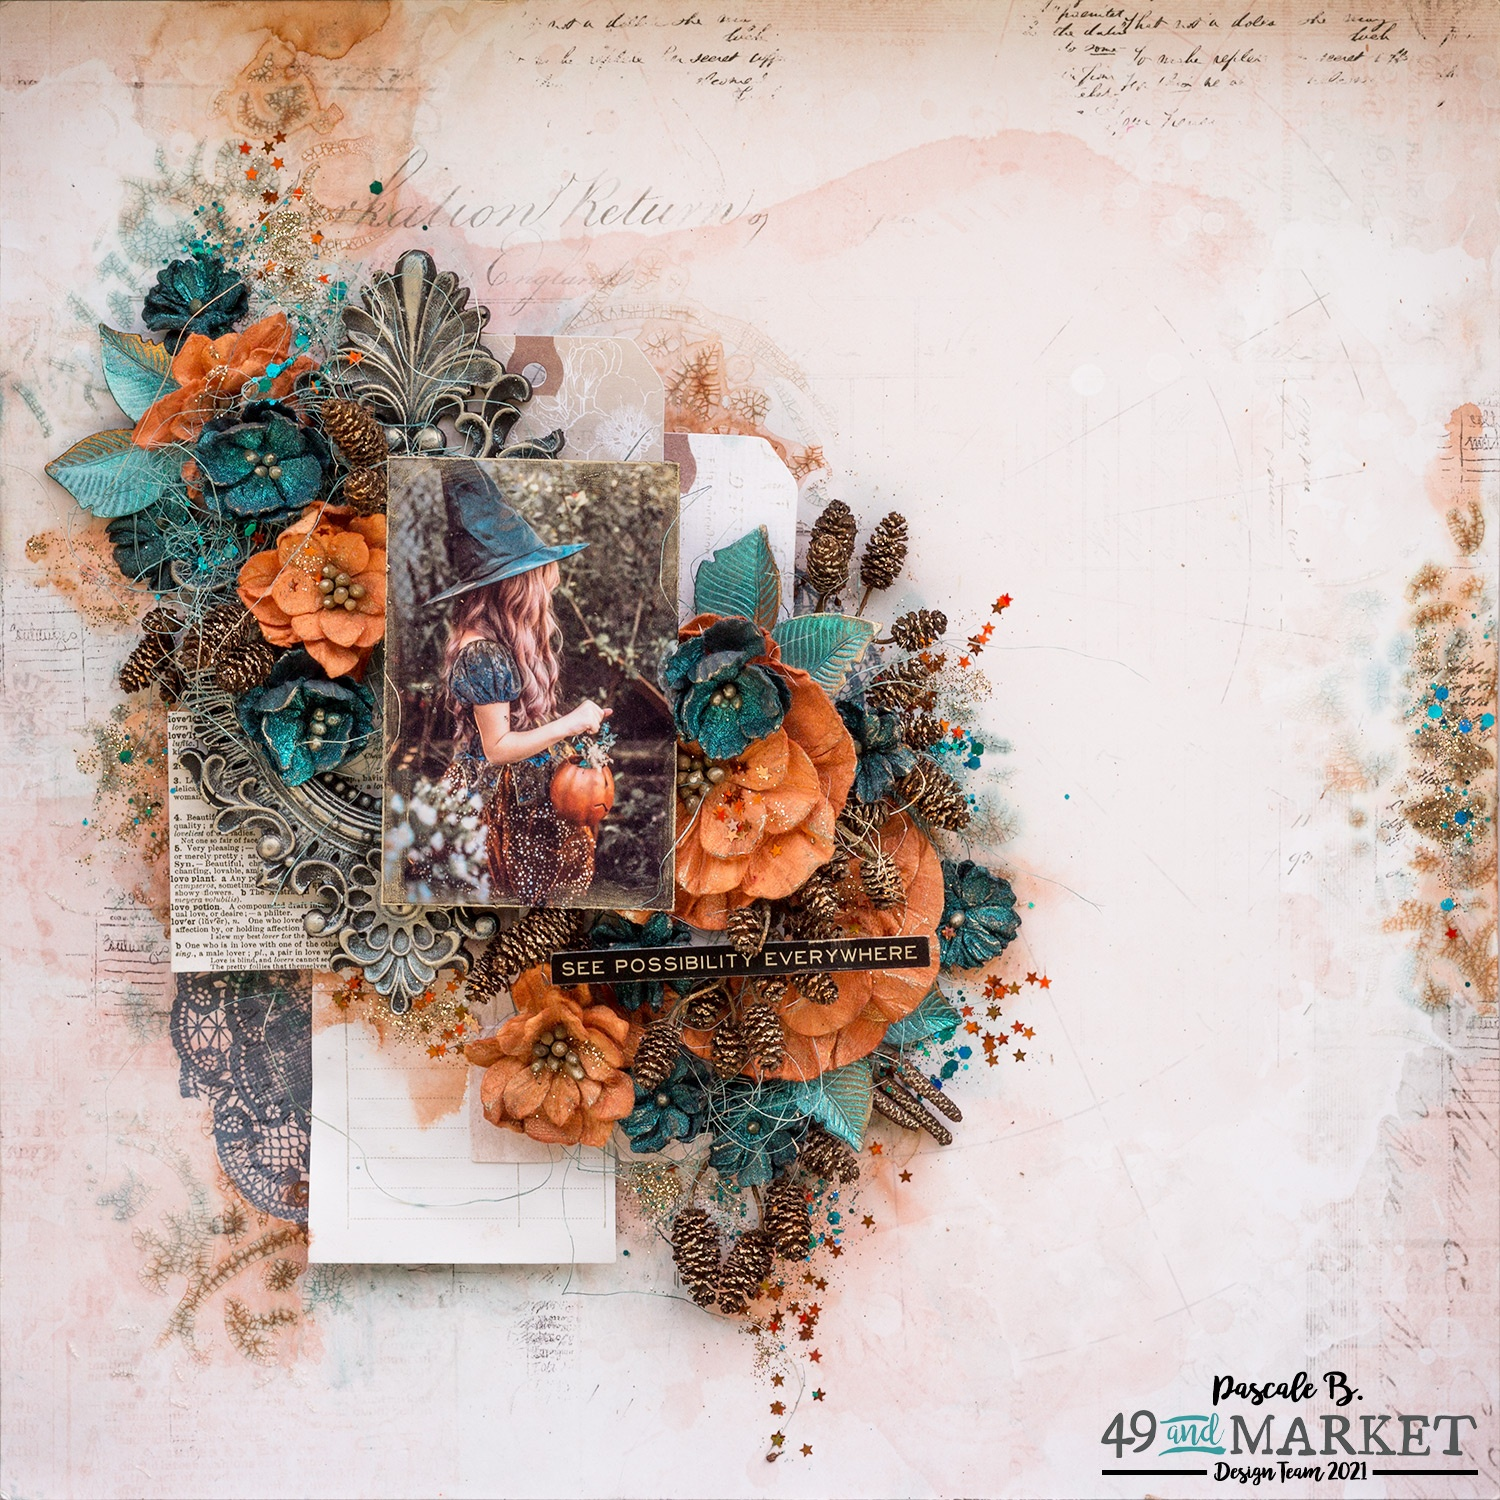 See Possibility Everywhere - Mixed media layout by Pascale B.